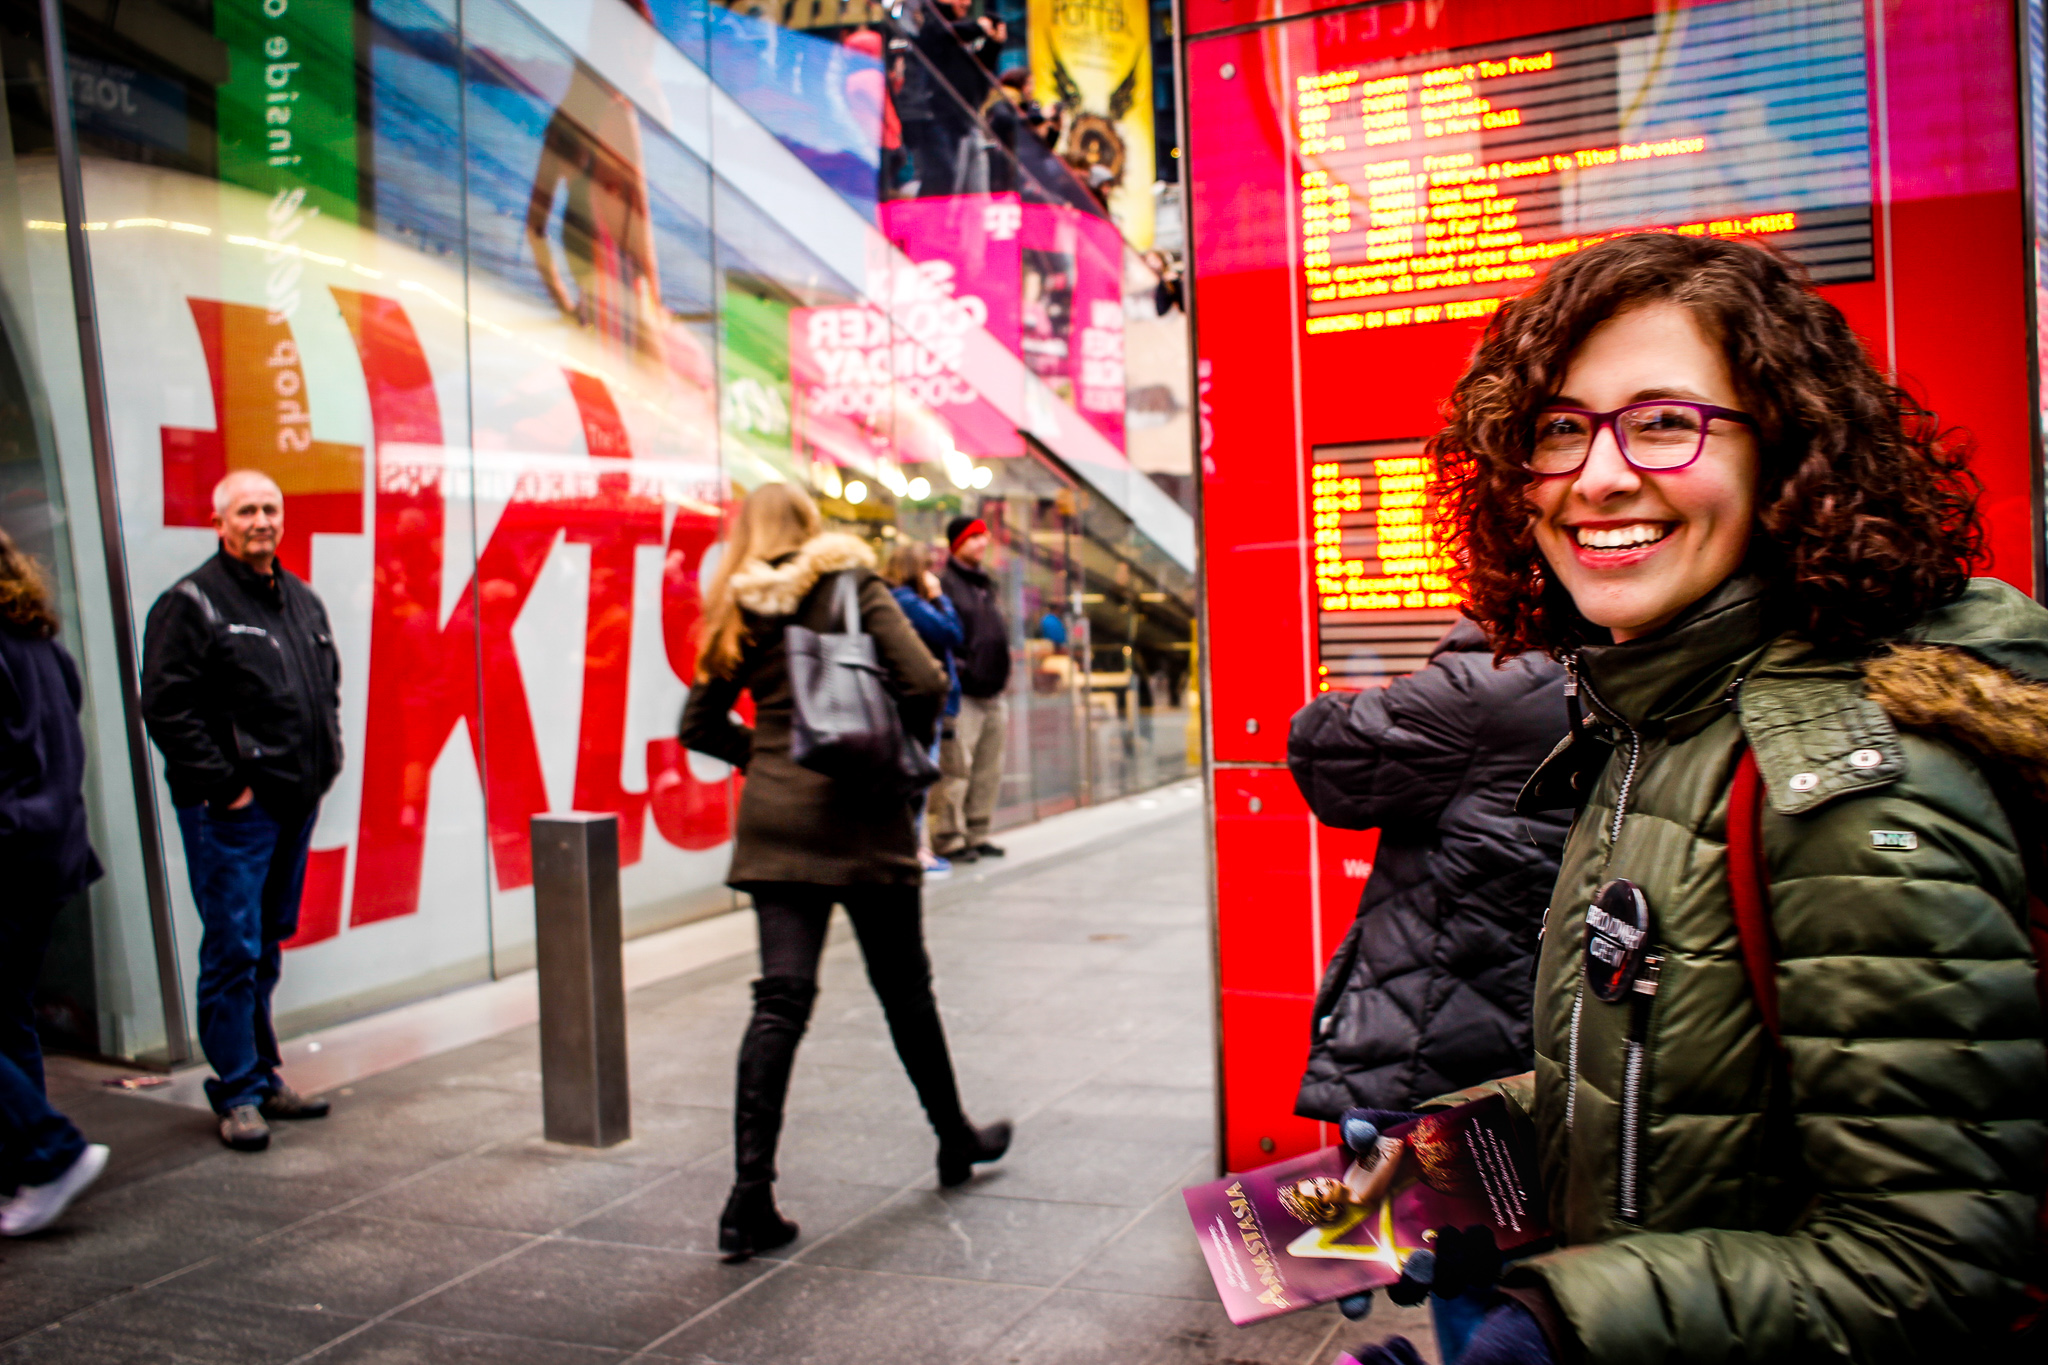 Our awesome crew member Tova having a blast at the TKTS booth in Times Square.